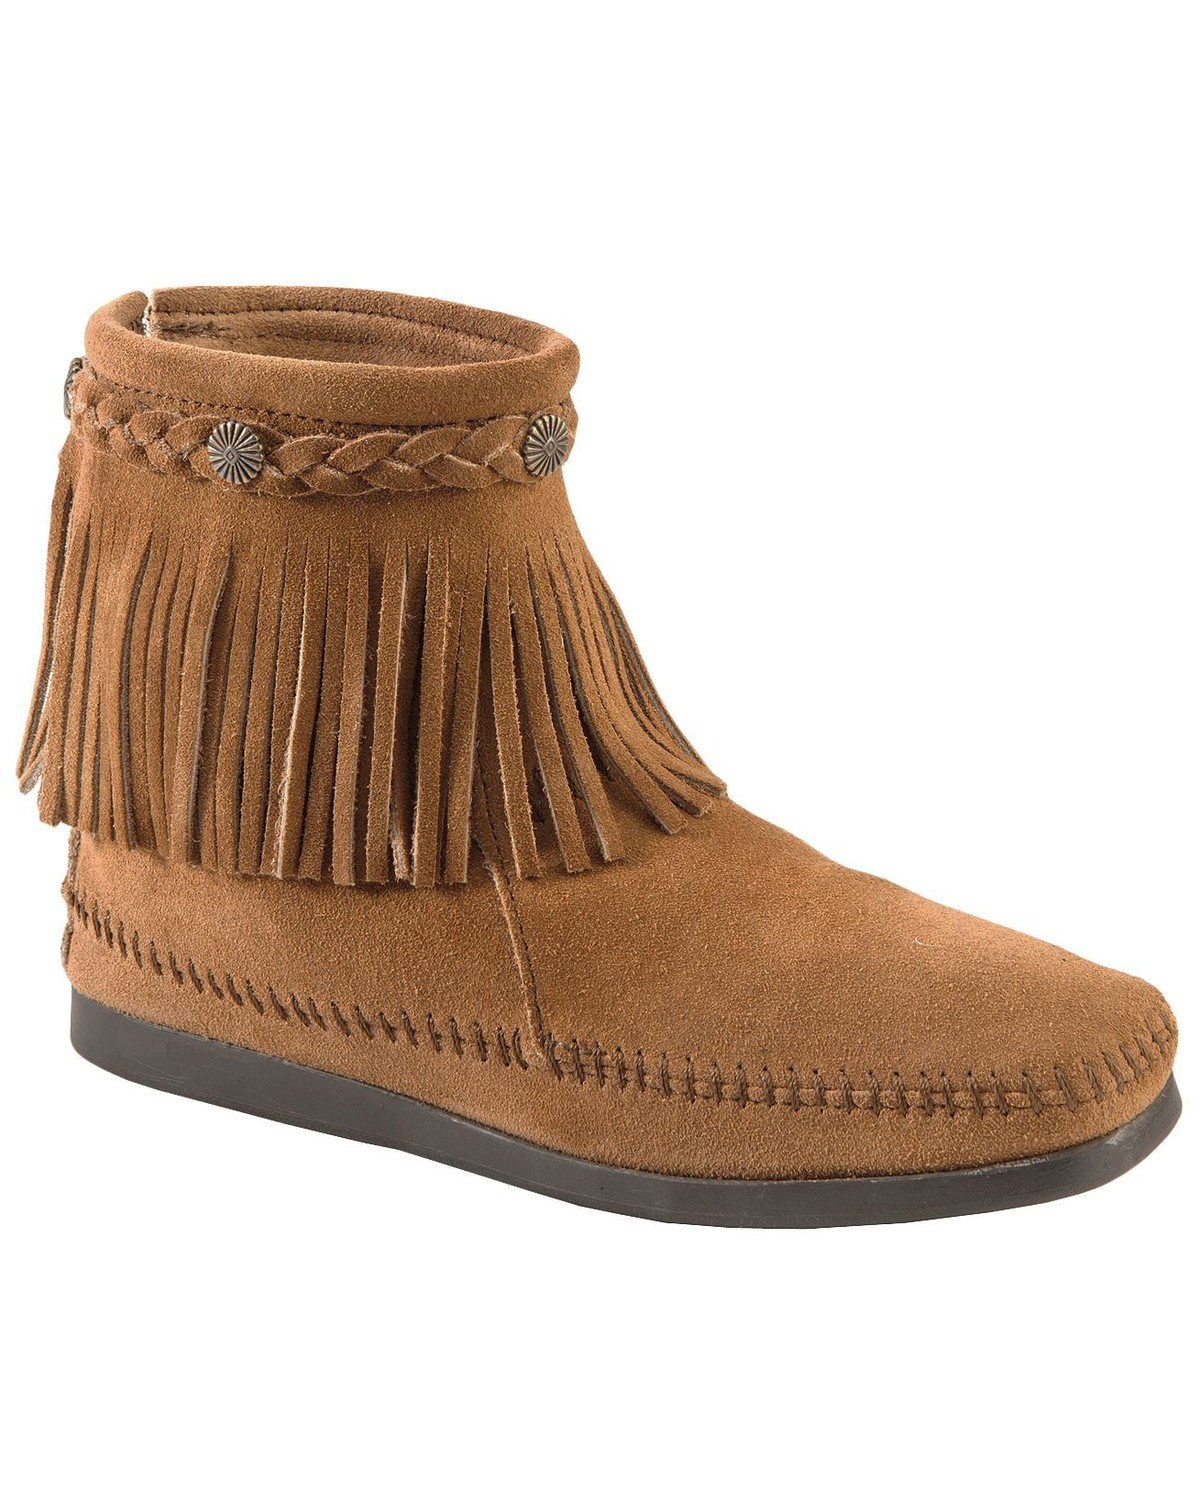 Minnetonka suede leather knee high tall lace up moccasin fringe boots - Minnetonka Back Zipper Ankle Moccasins